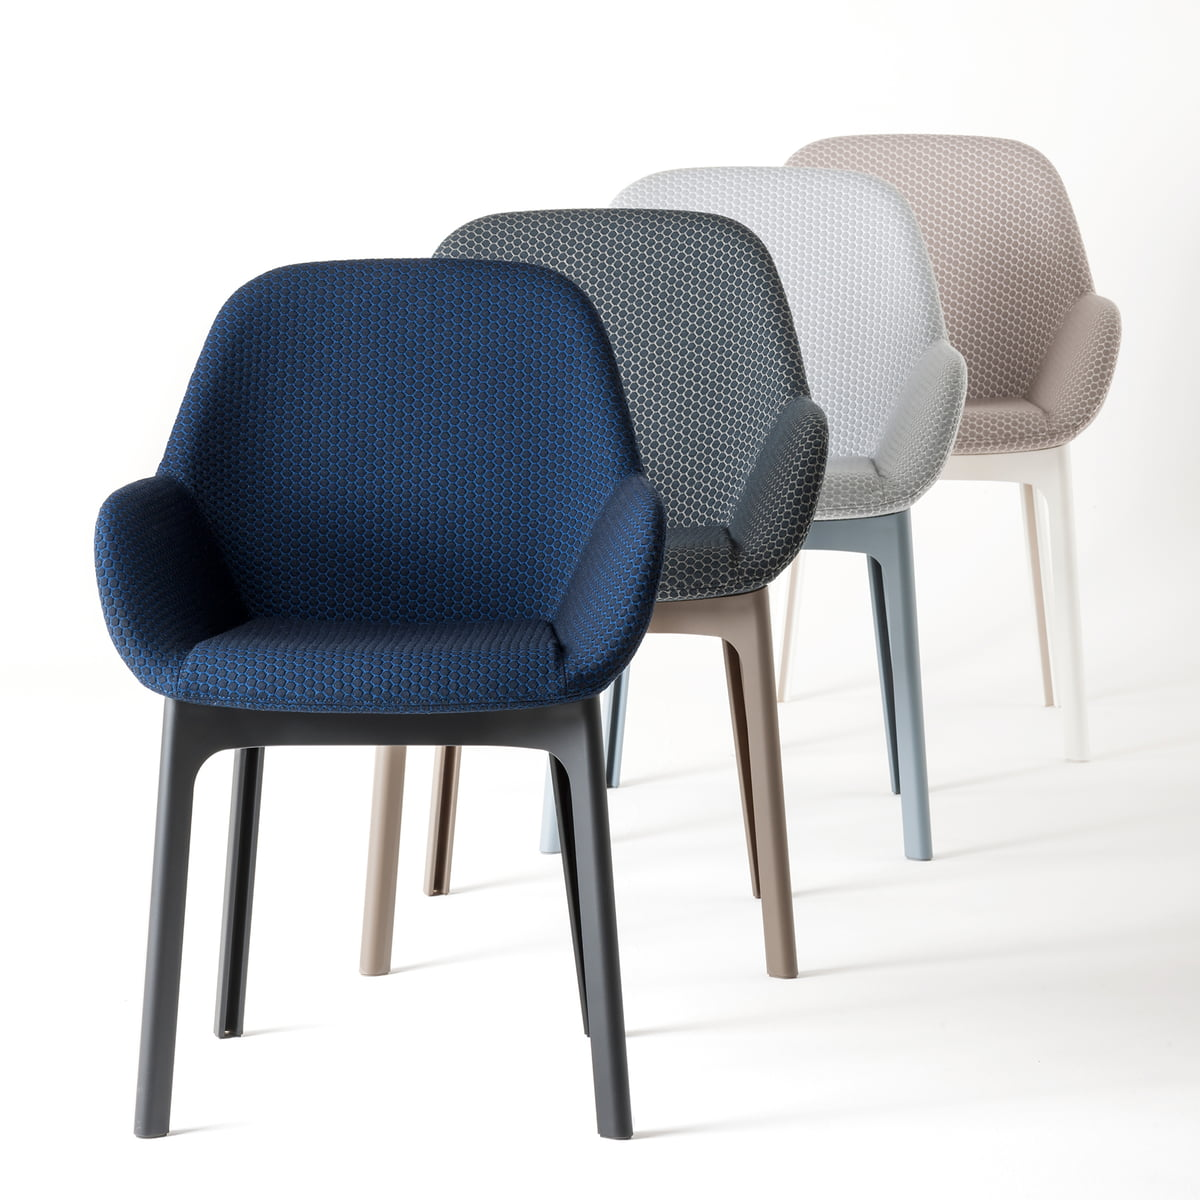 the clap chair by kartell in the design shop - kartell  clap chair